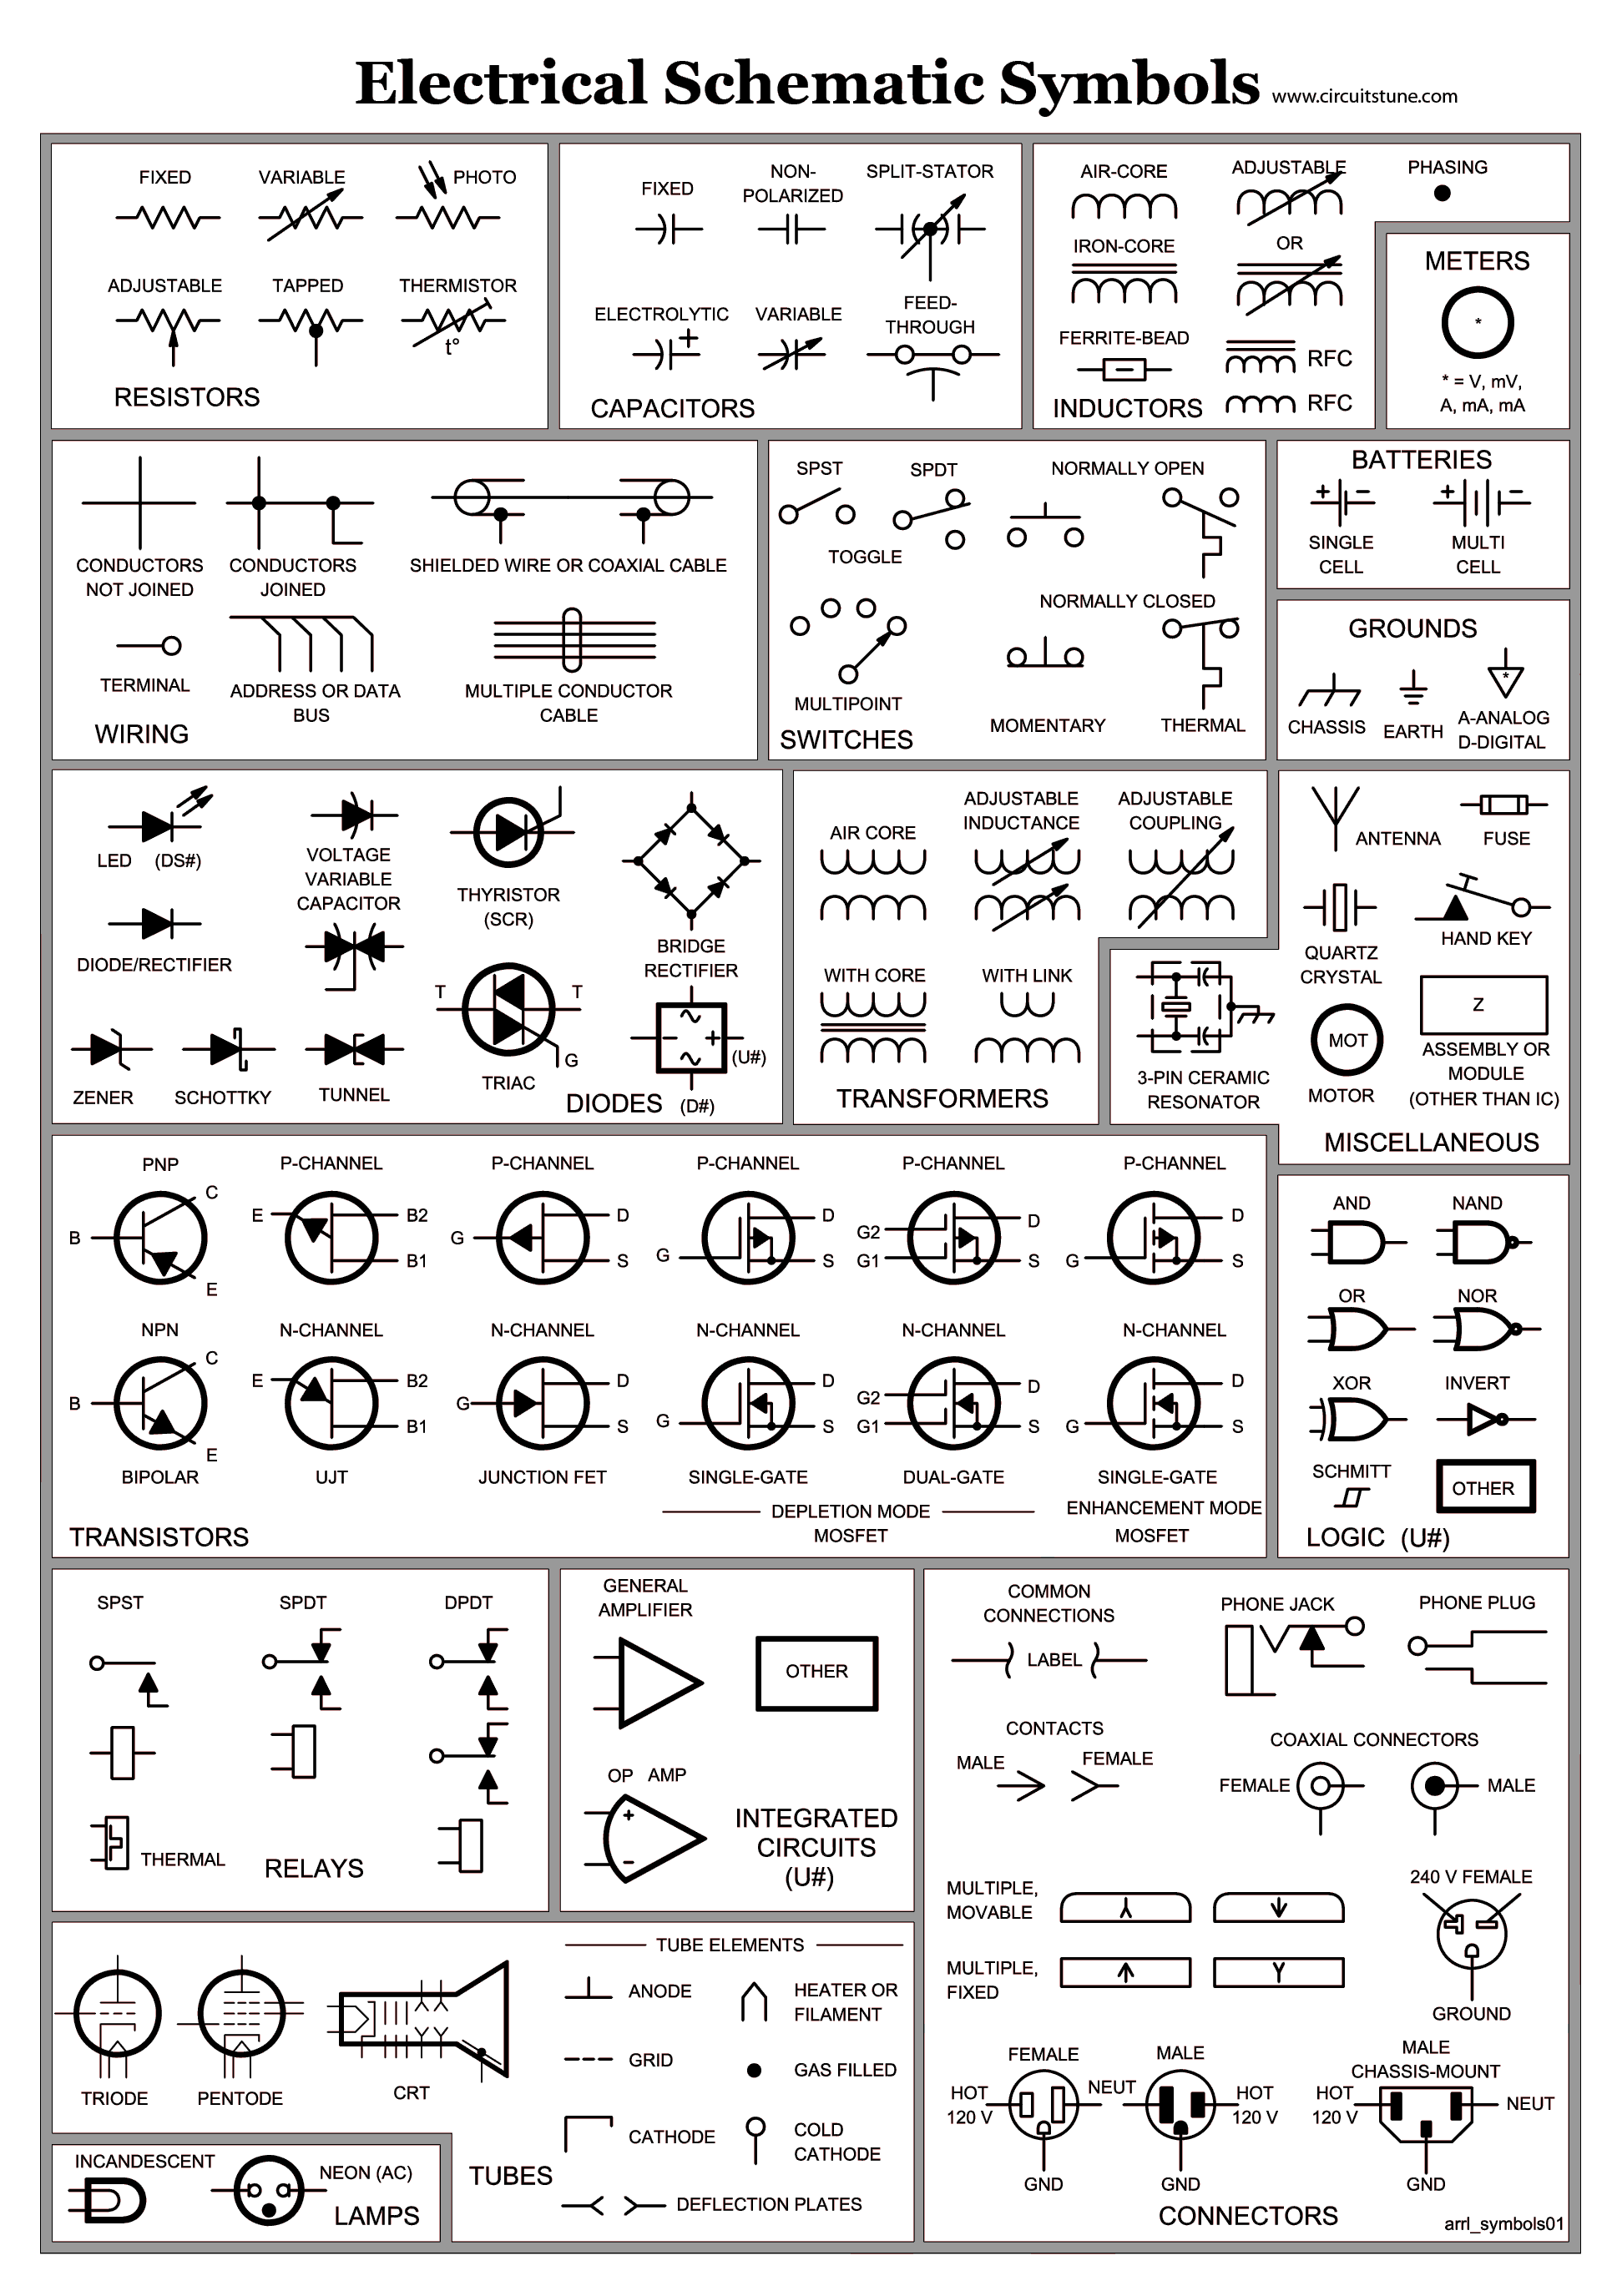 electrical schematic symbols wire diagram symbols automotive wiring rh pinterest com electronics schematic symbols and functions electric wiring diagram symbols